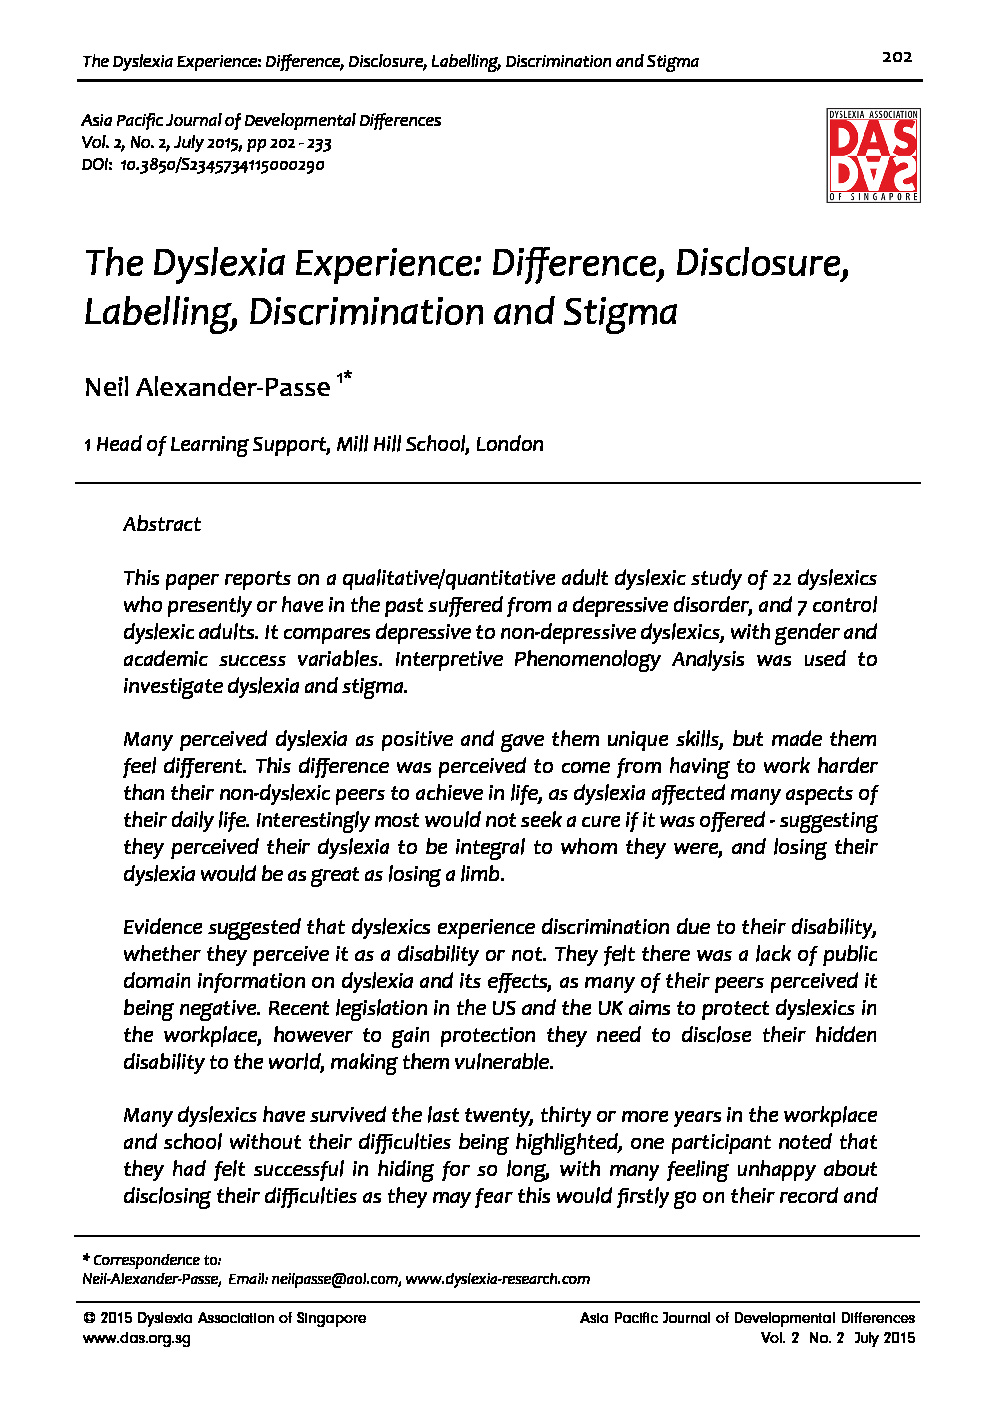 7 The Dyslexia Experience Difference Disclosure Labelling